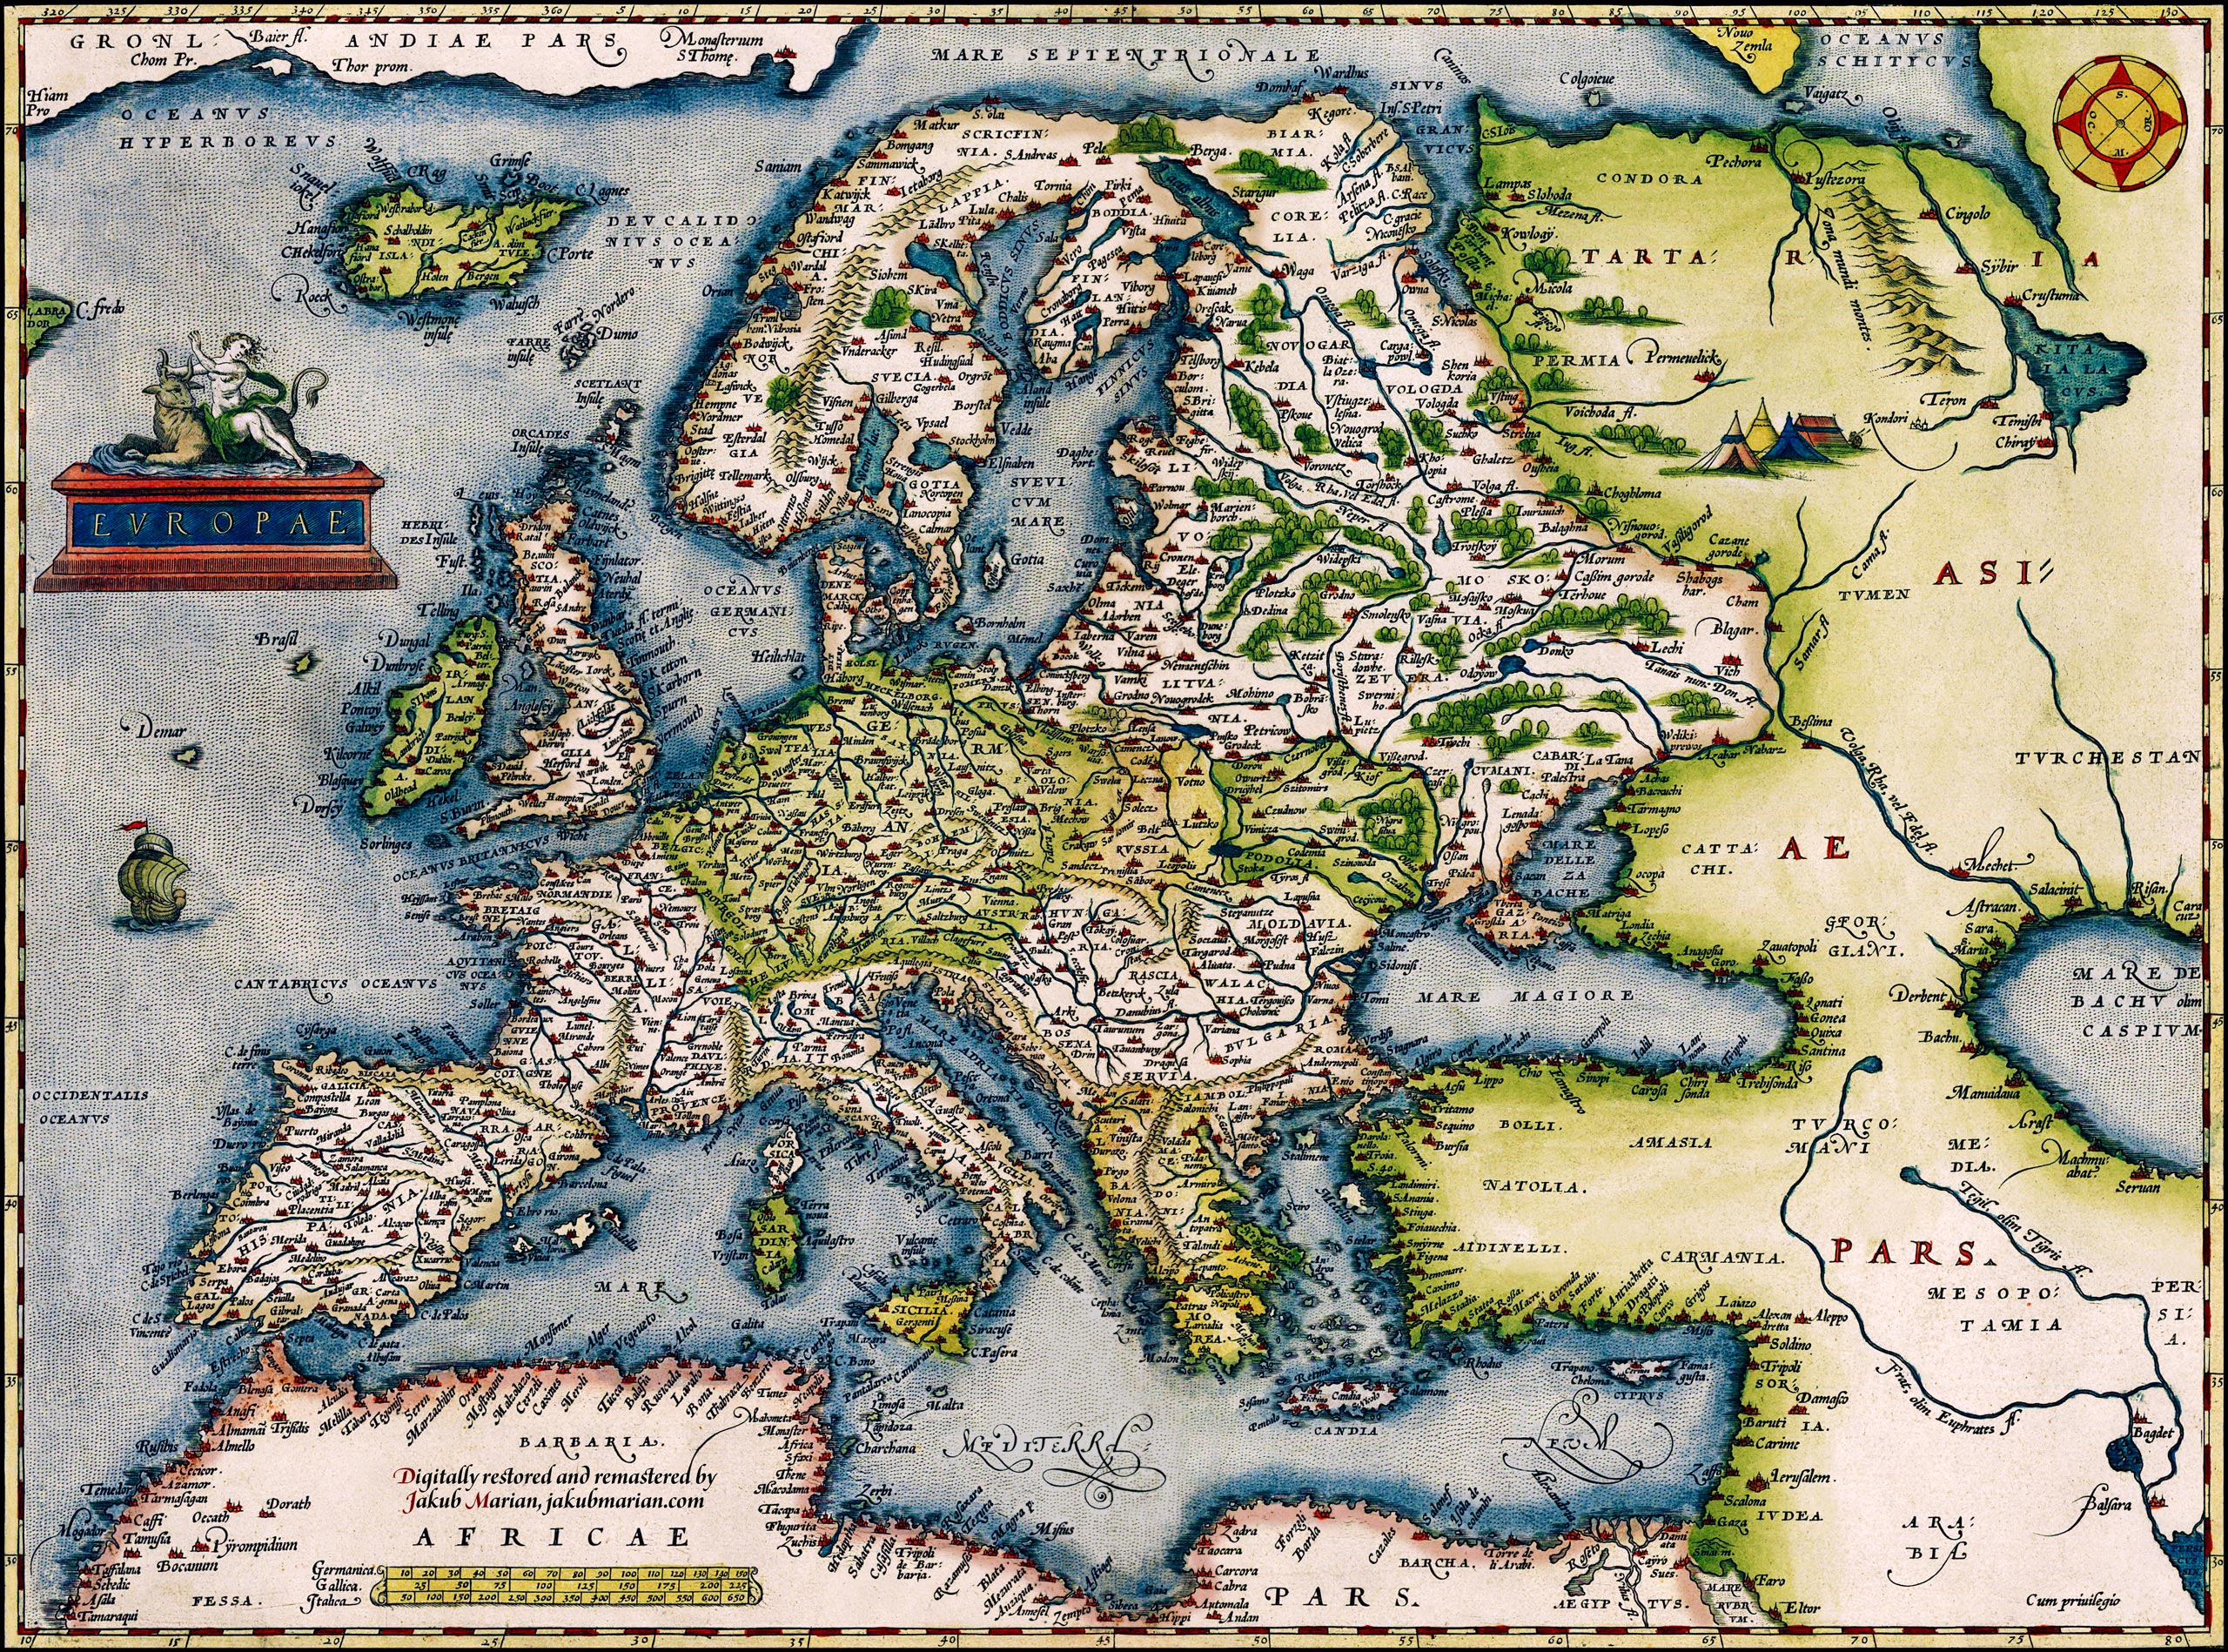 1572 map of Europe by Abraham Ortelius